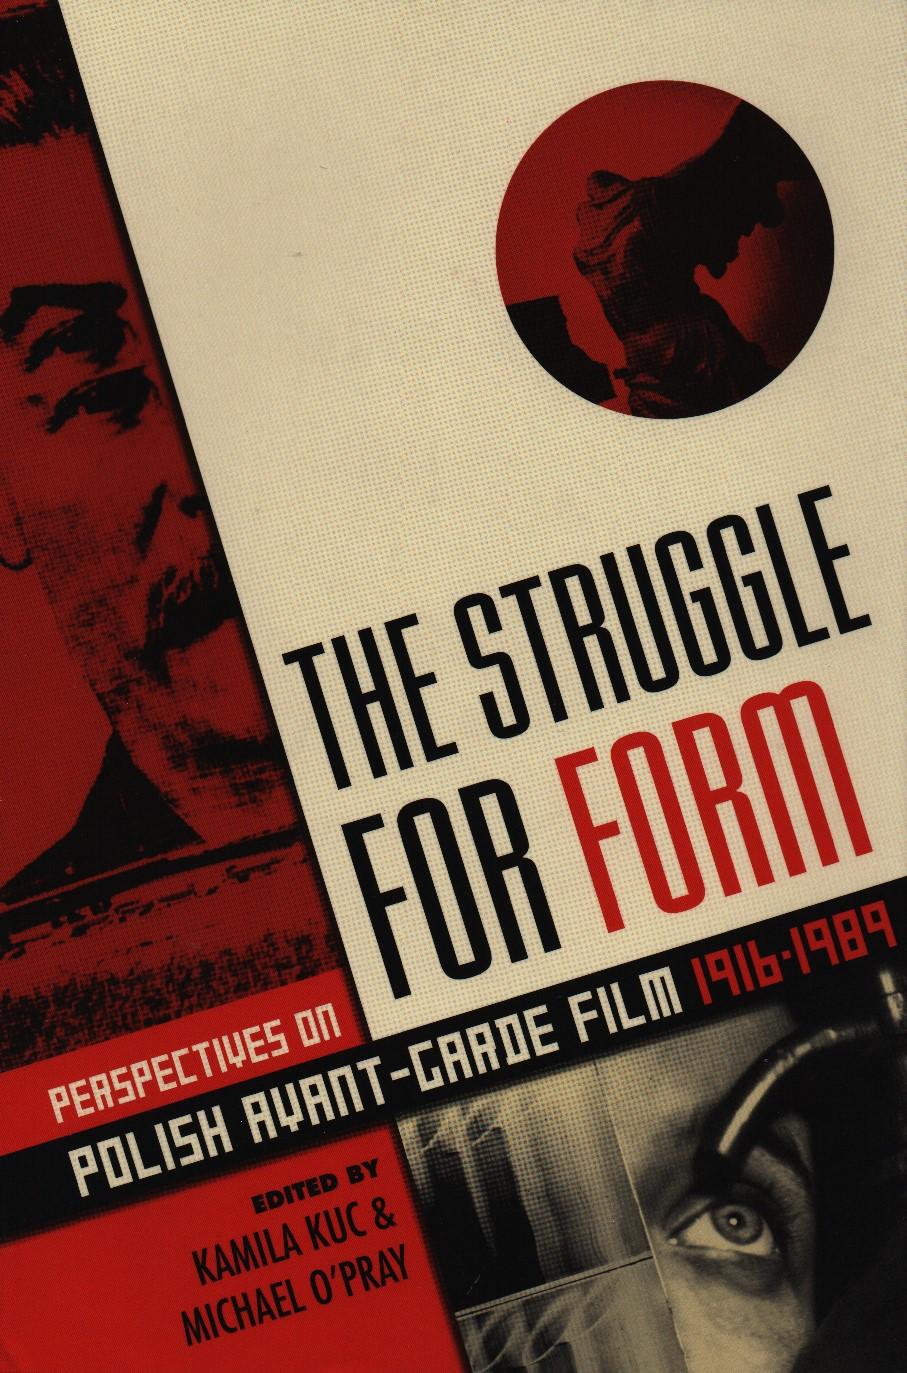 The Struggle for Form: Perspectives on Polish Avant-Garde Film 1916-1989